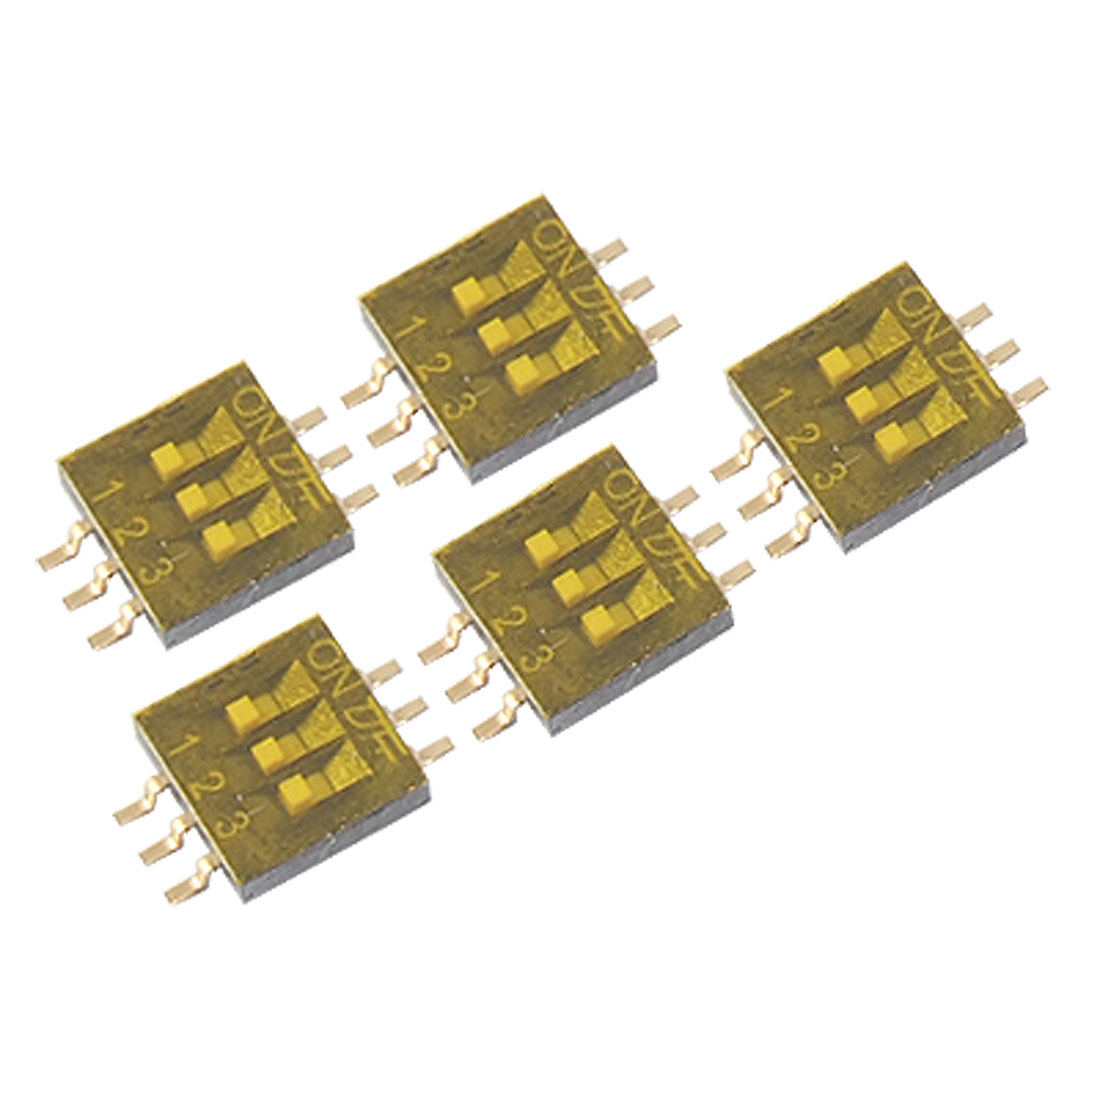 5 Pcs Dual Row 3 Position 1.27mm Half Pitch SMT Type DIP Switch